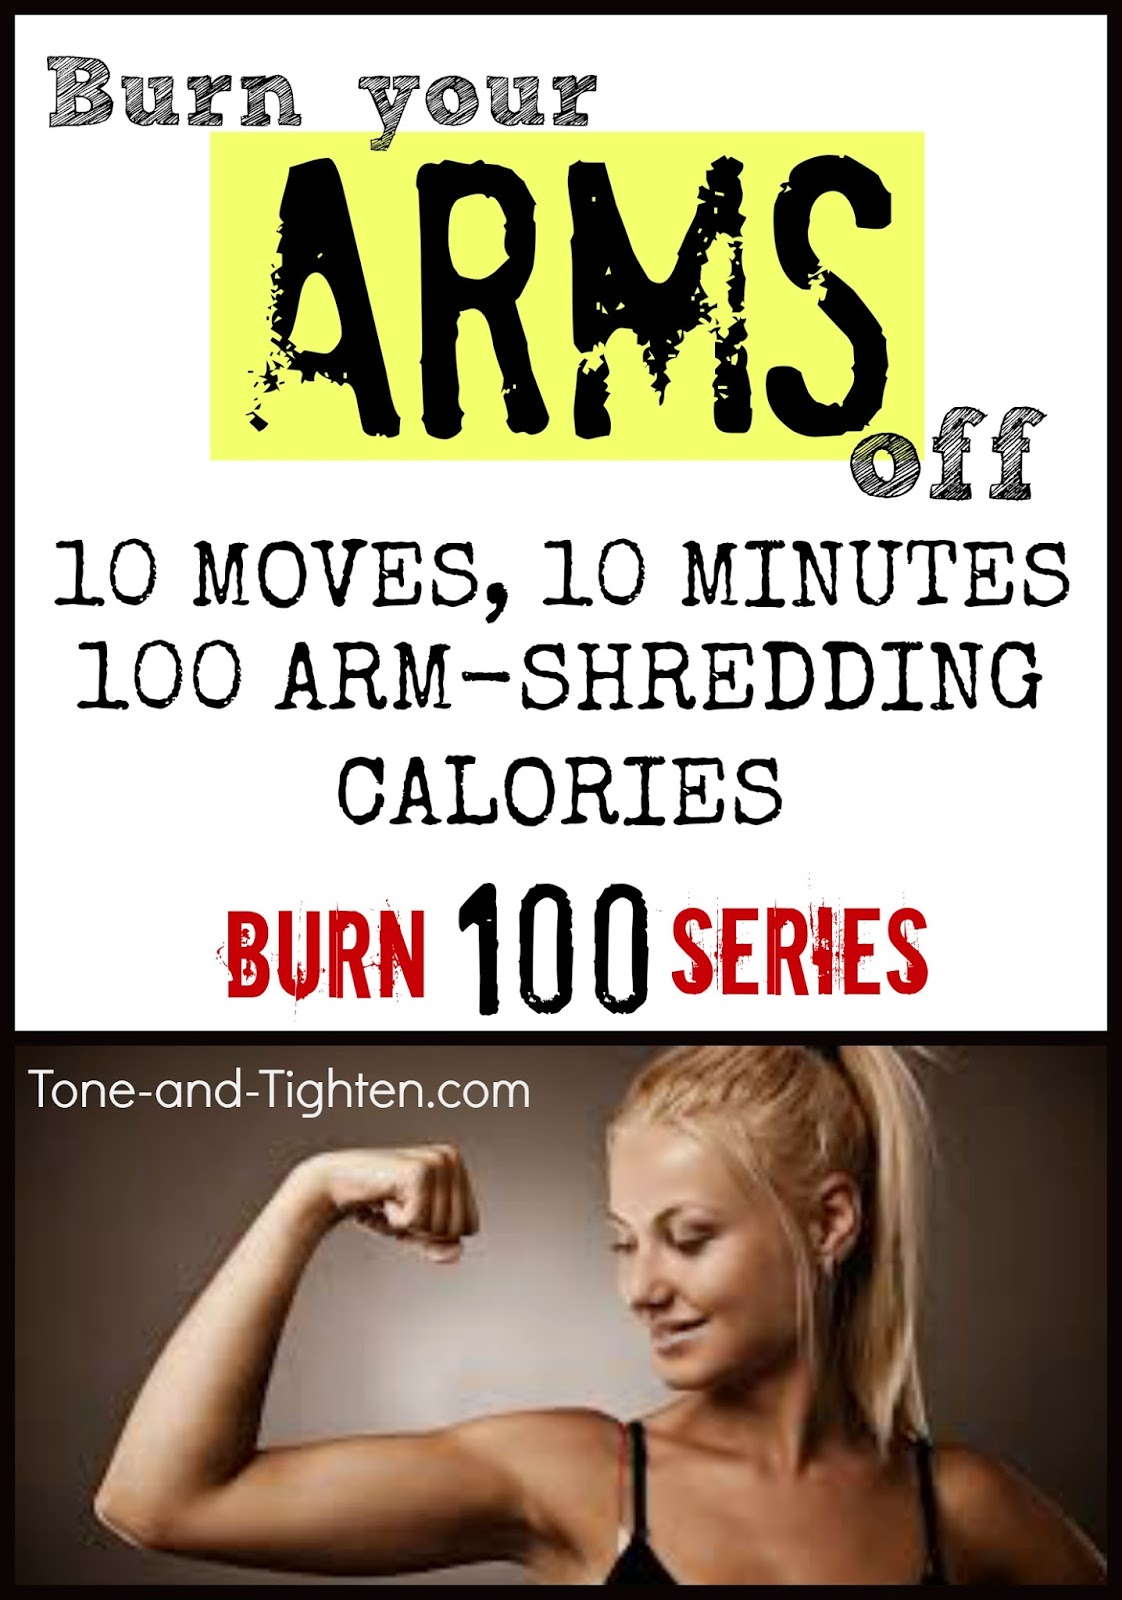 http://tone-and-tighten.com/2013/09/burn-100-calories-in-10-minutes-burn-100-series-workout-6-killer-arm-at-home-workout.html